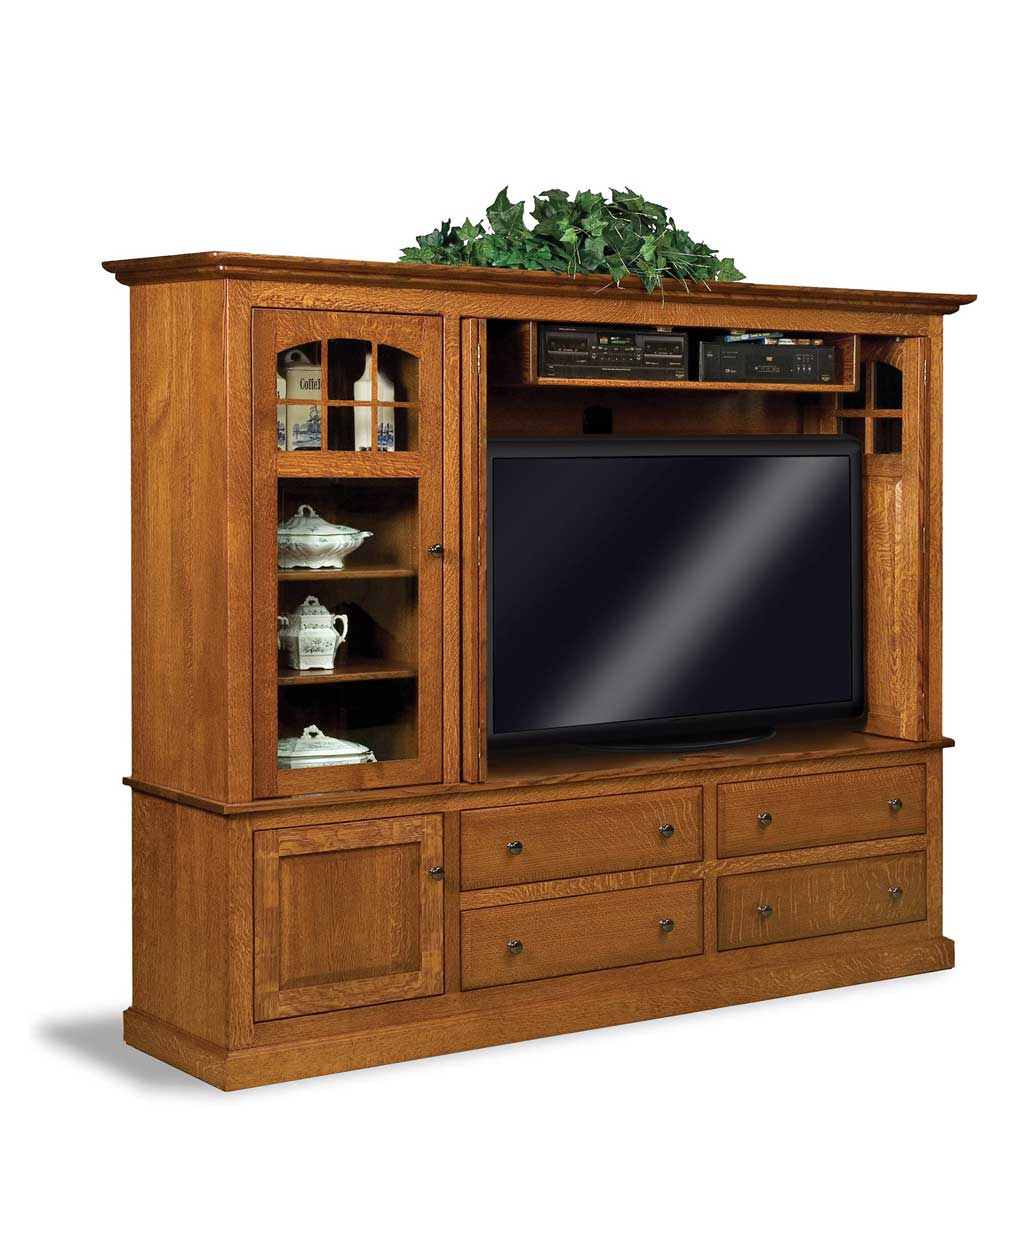 Media Furniture Cabinets: Contemporary Mission Media Cabinet With Stereo Cabinet